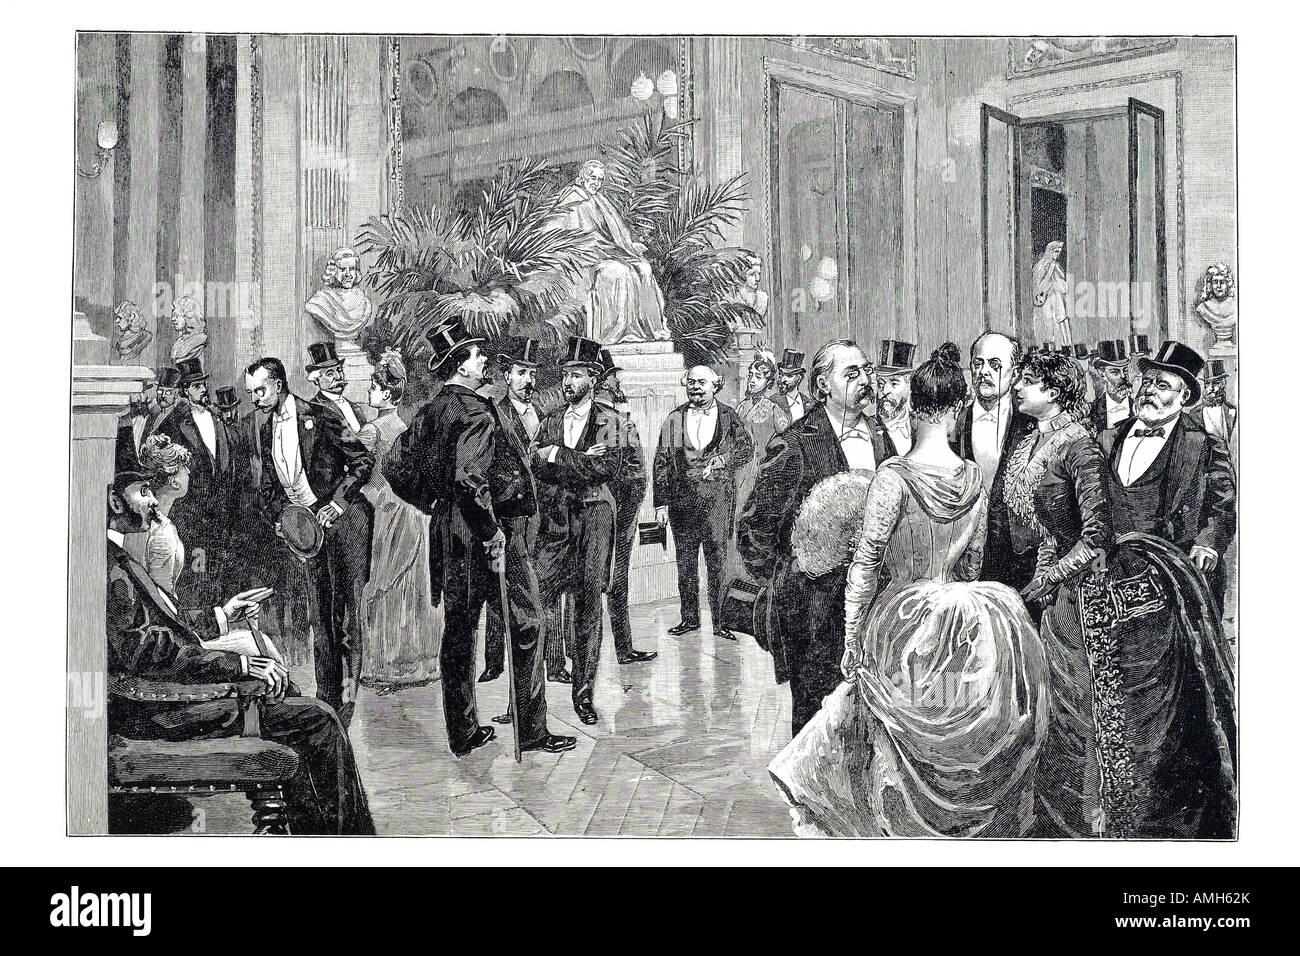 first night comedie francaise foyer society top hat evening formal dress aristocracy upper class well to do theatre - Stock Image